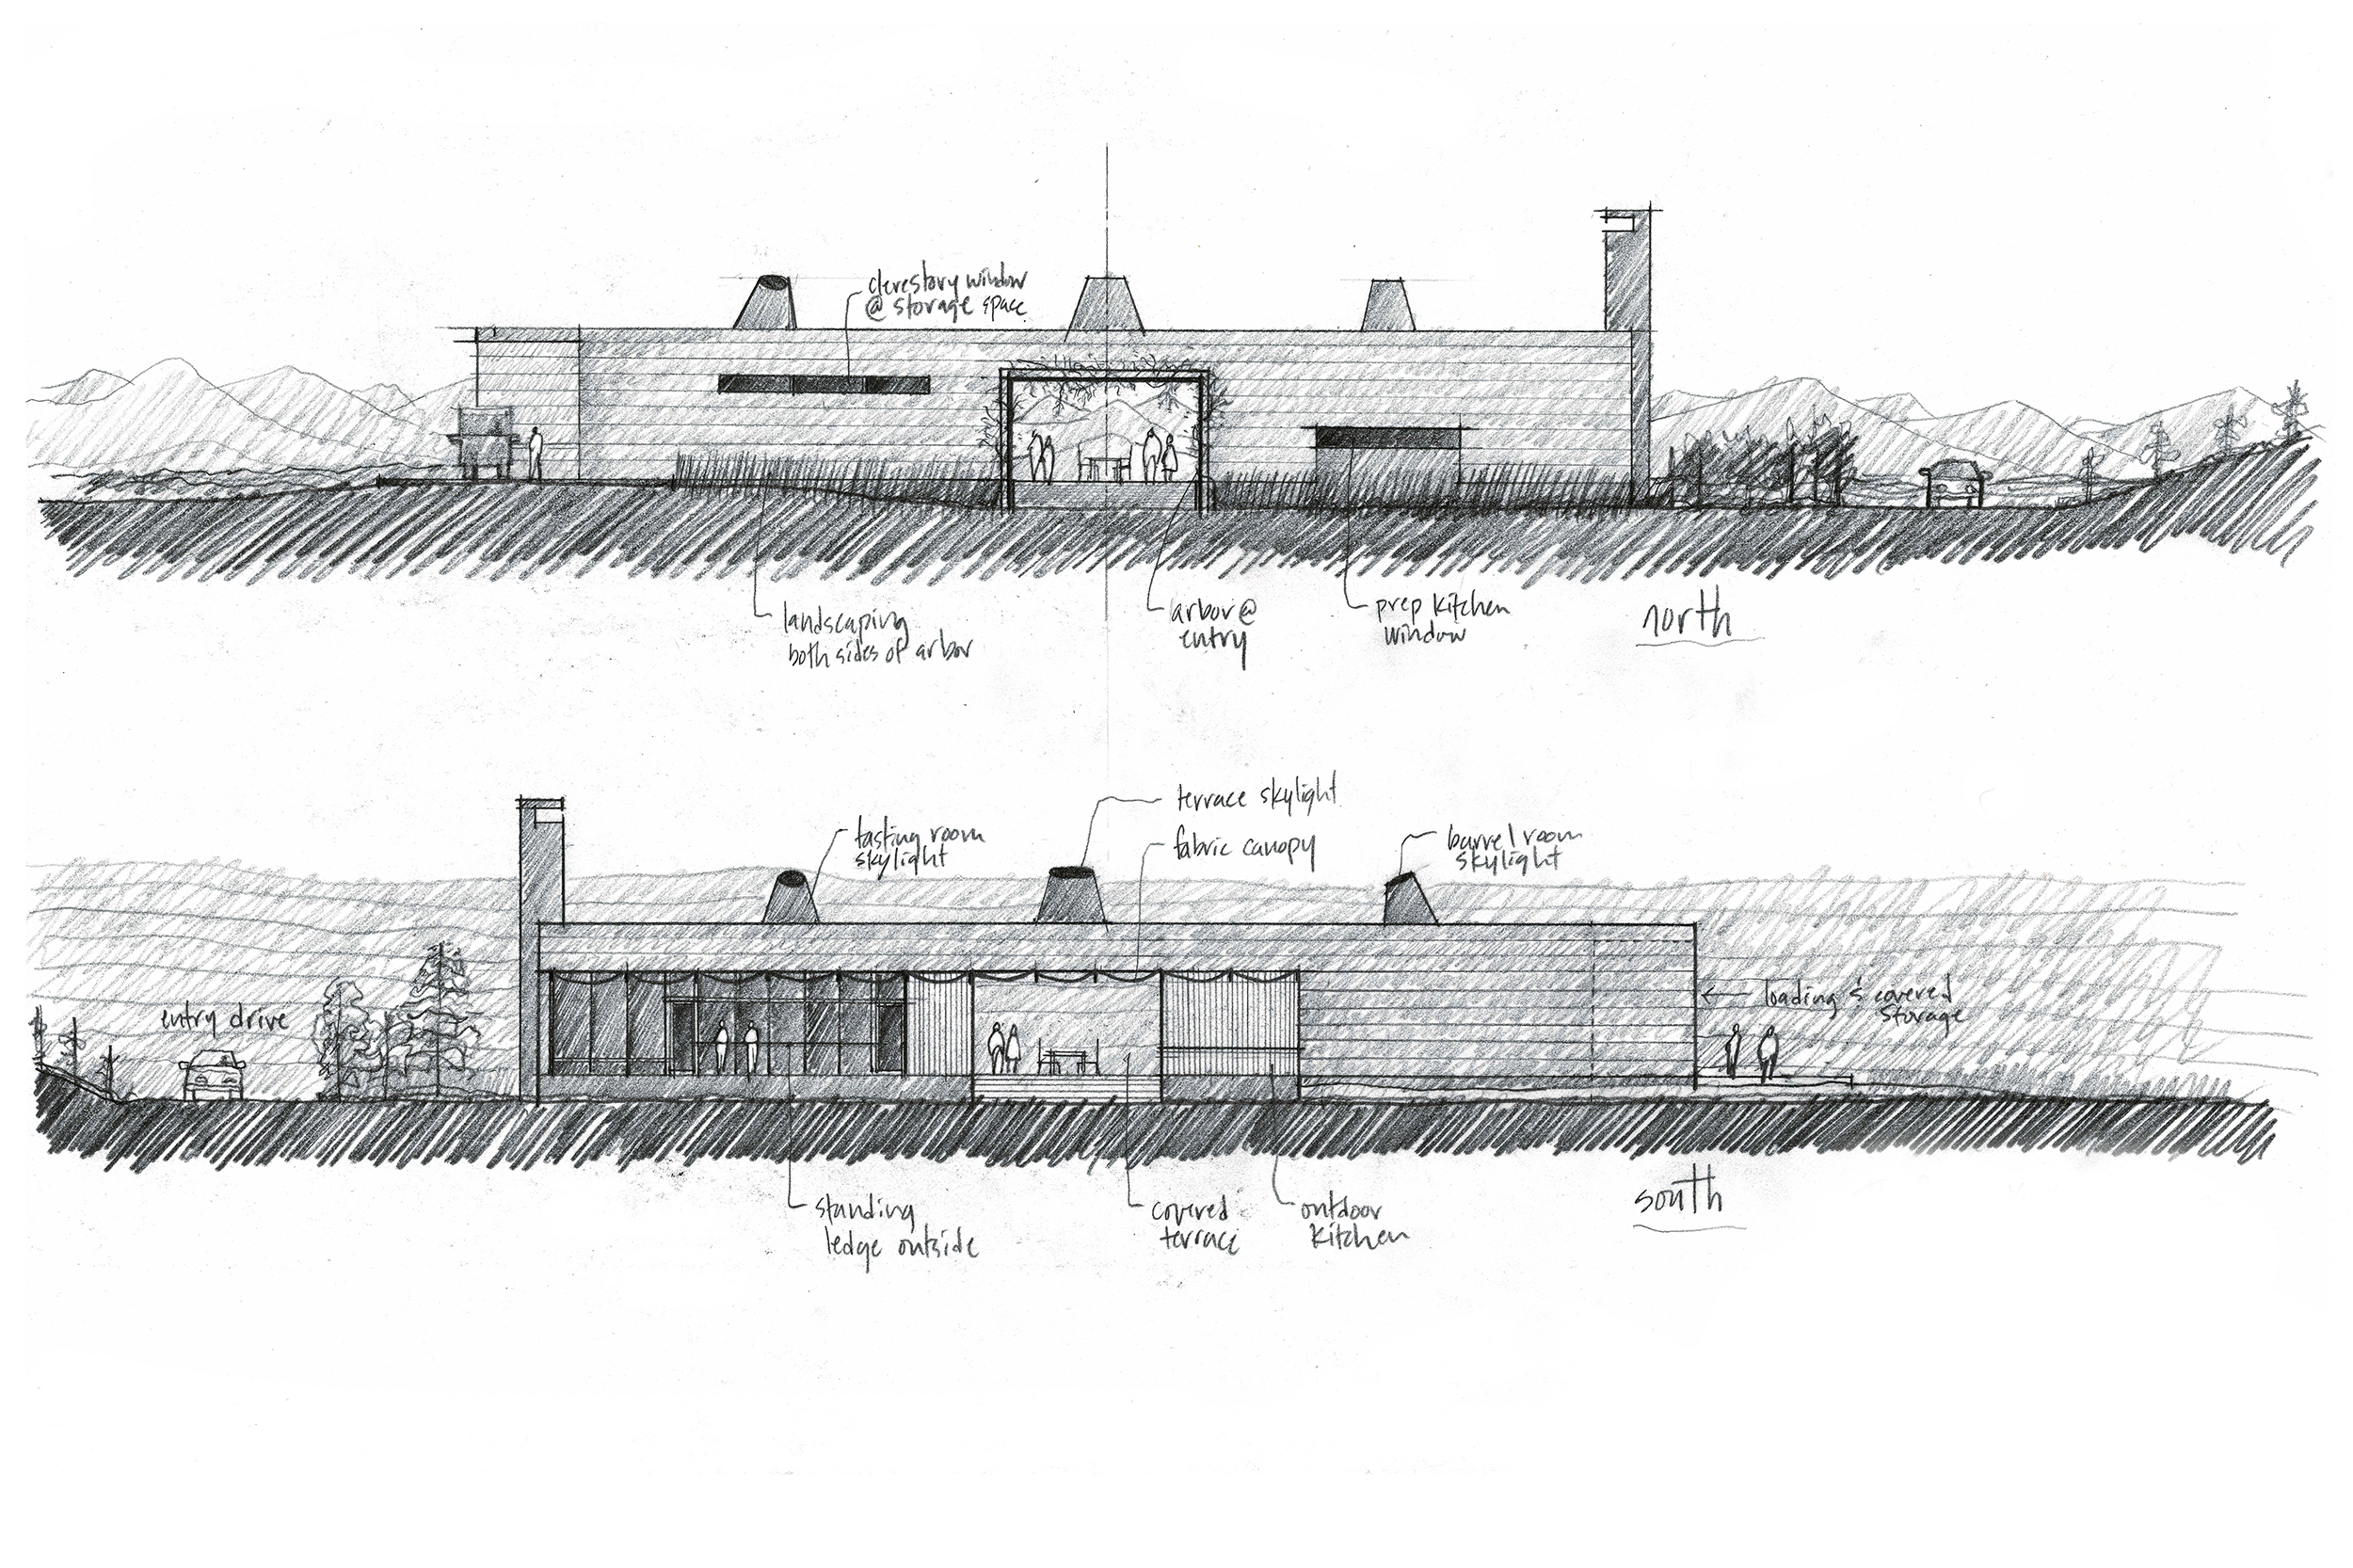 The Cove_Exterior Elevation Sketches.jpg